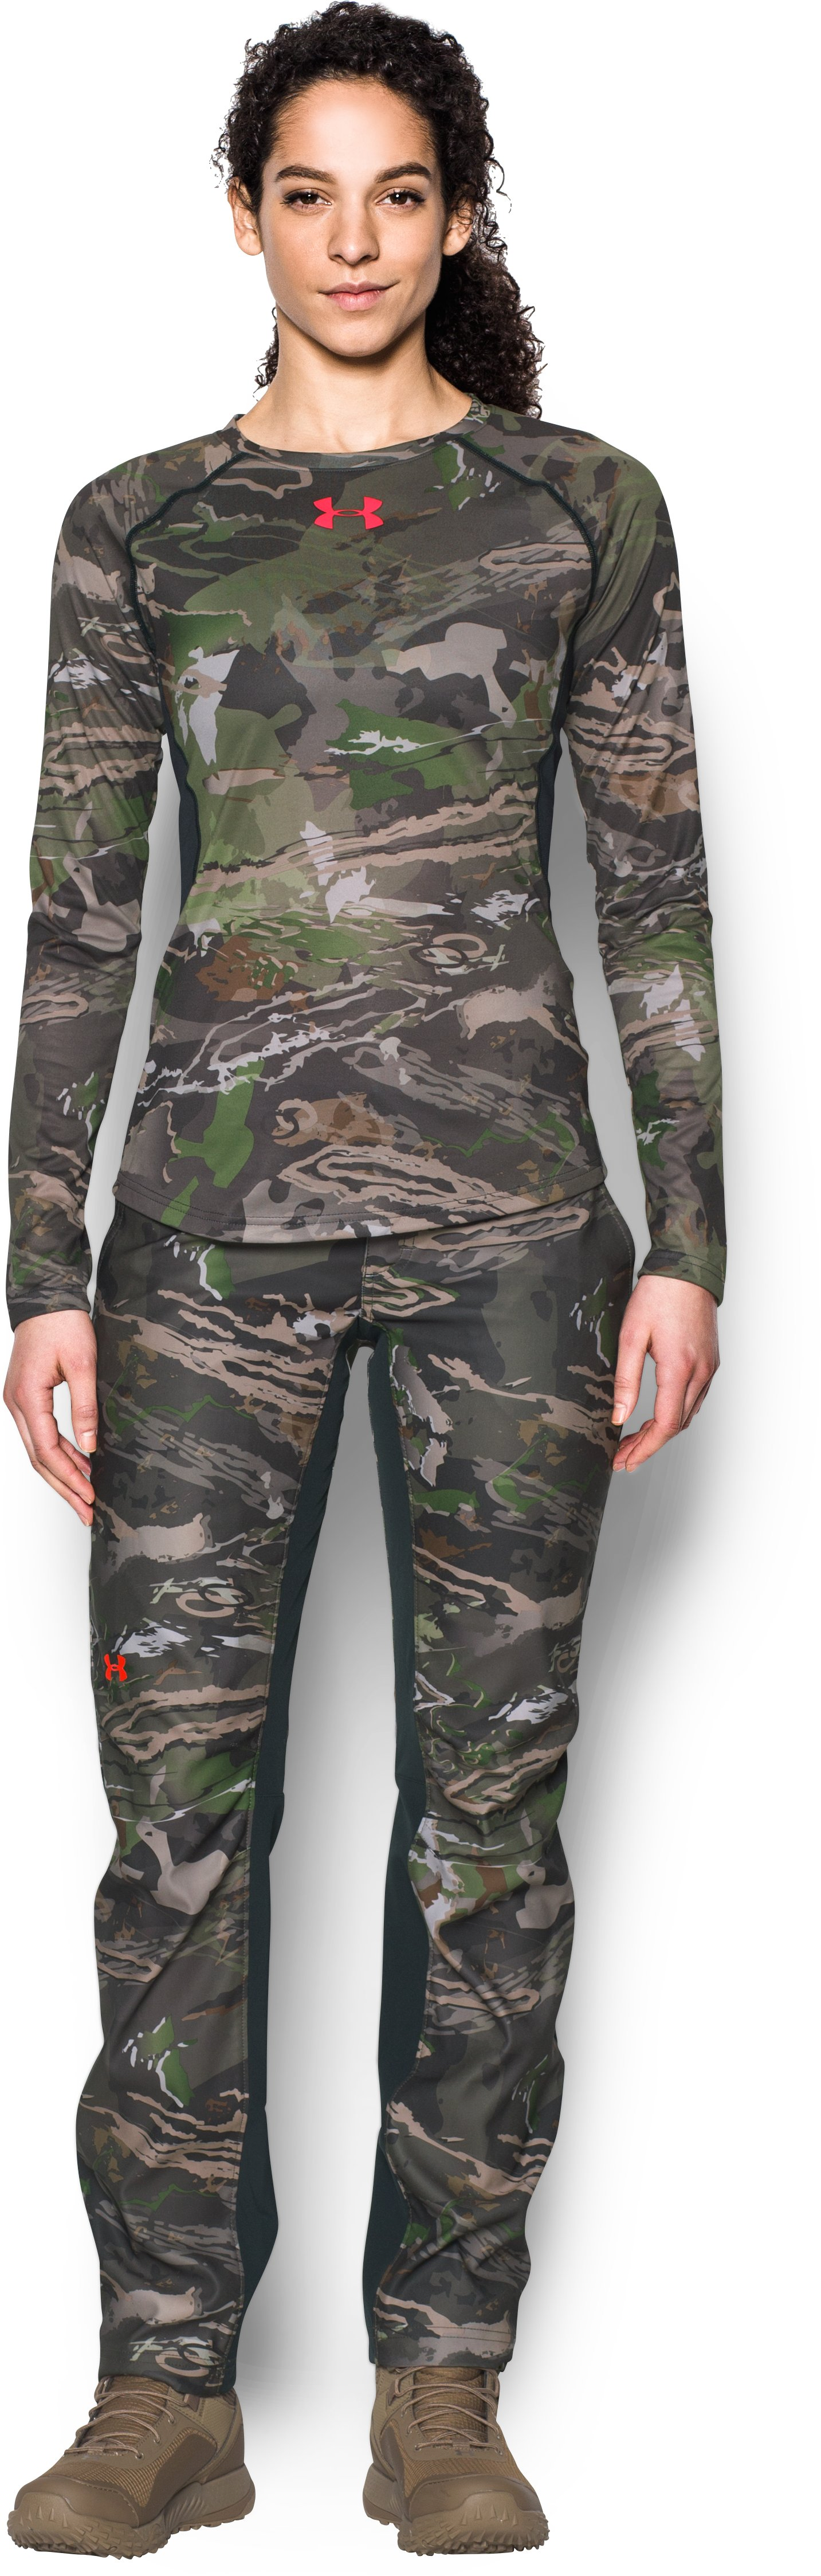 Women's Under Armour® Scent Control Tech Long Sleeve, RIDGE REAPER® FOREST, Front